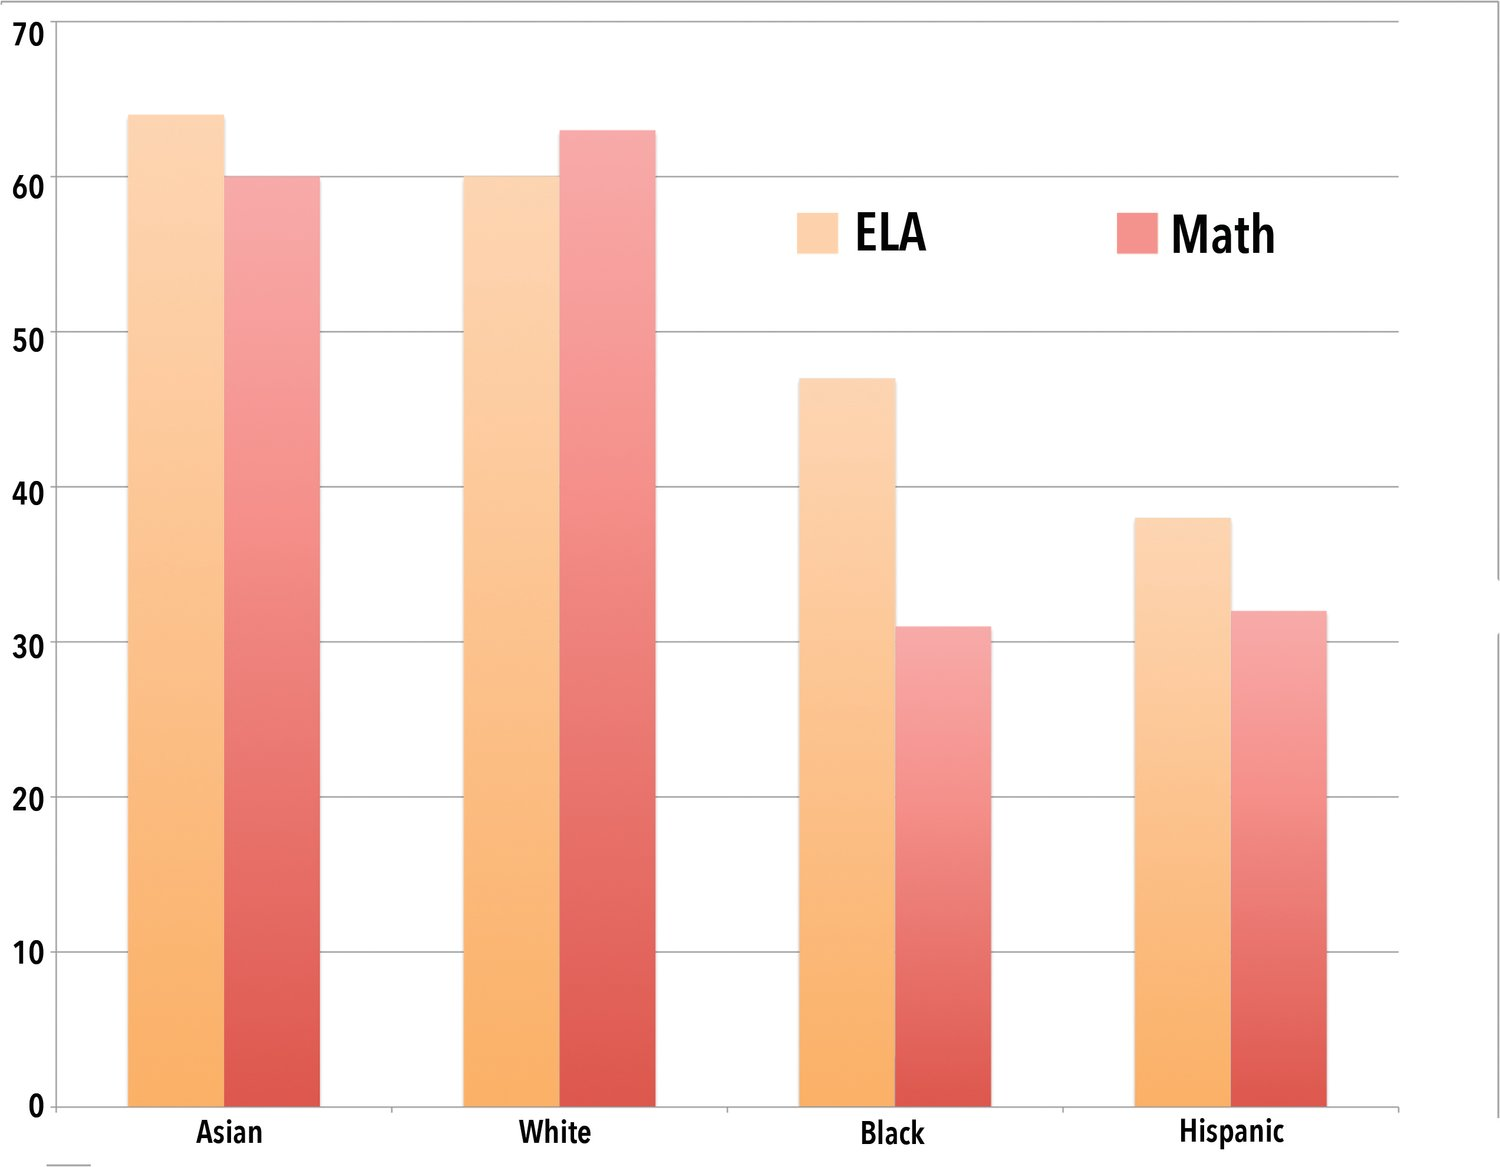 The proficiency levels among different races in the Sewanhaka Central High School District on State ELA and math exams in 2019.